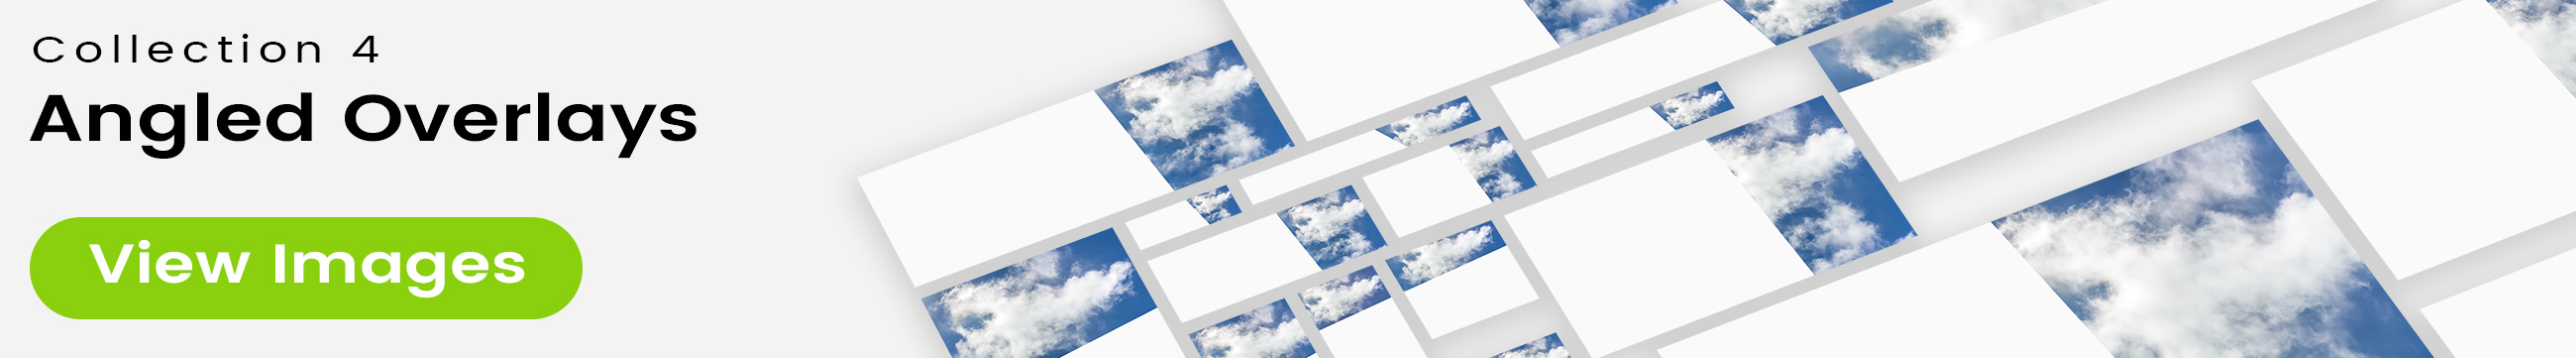 See 25 bonus images included with clouds stock image 9474. Collection 4 of 4 features an angled overlay design customized with a color that complements each photo.